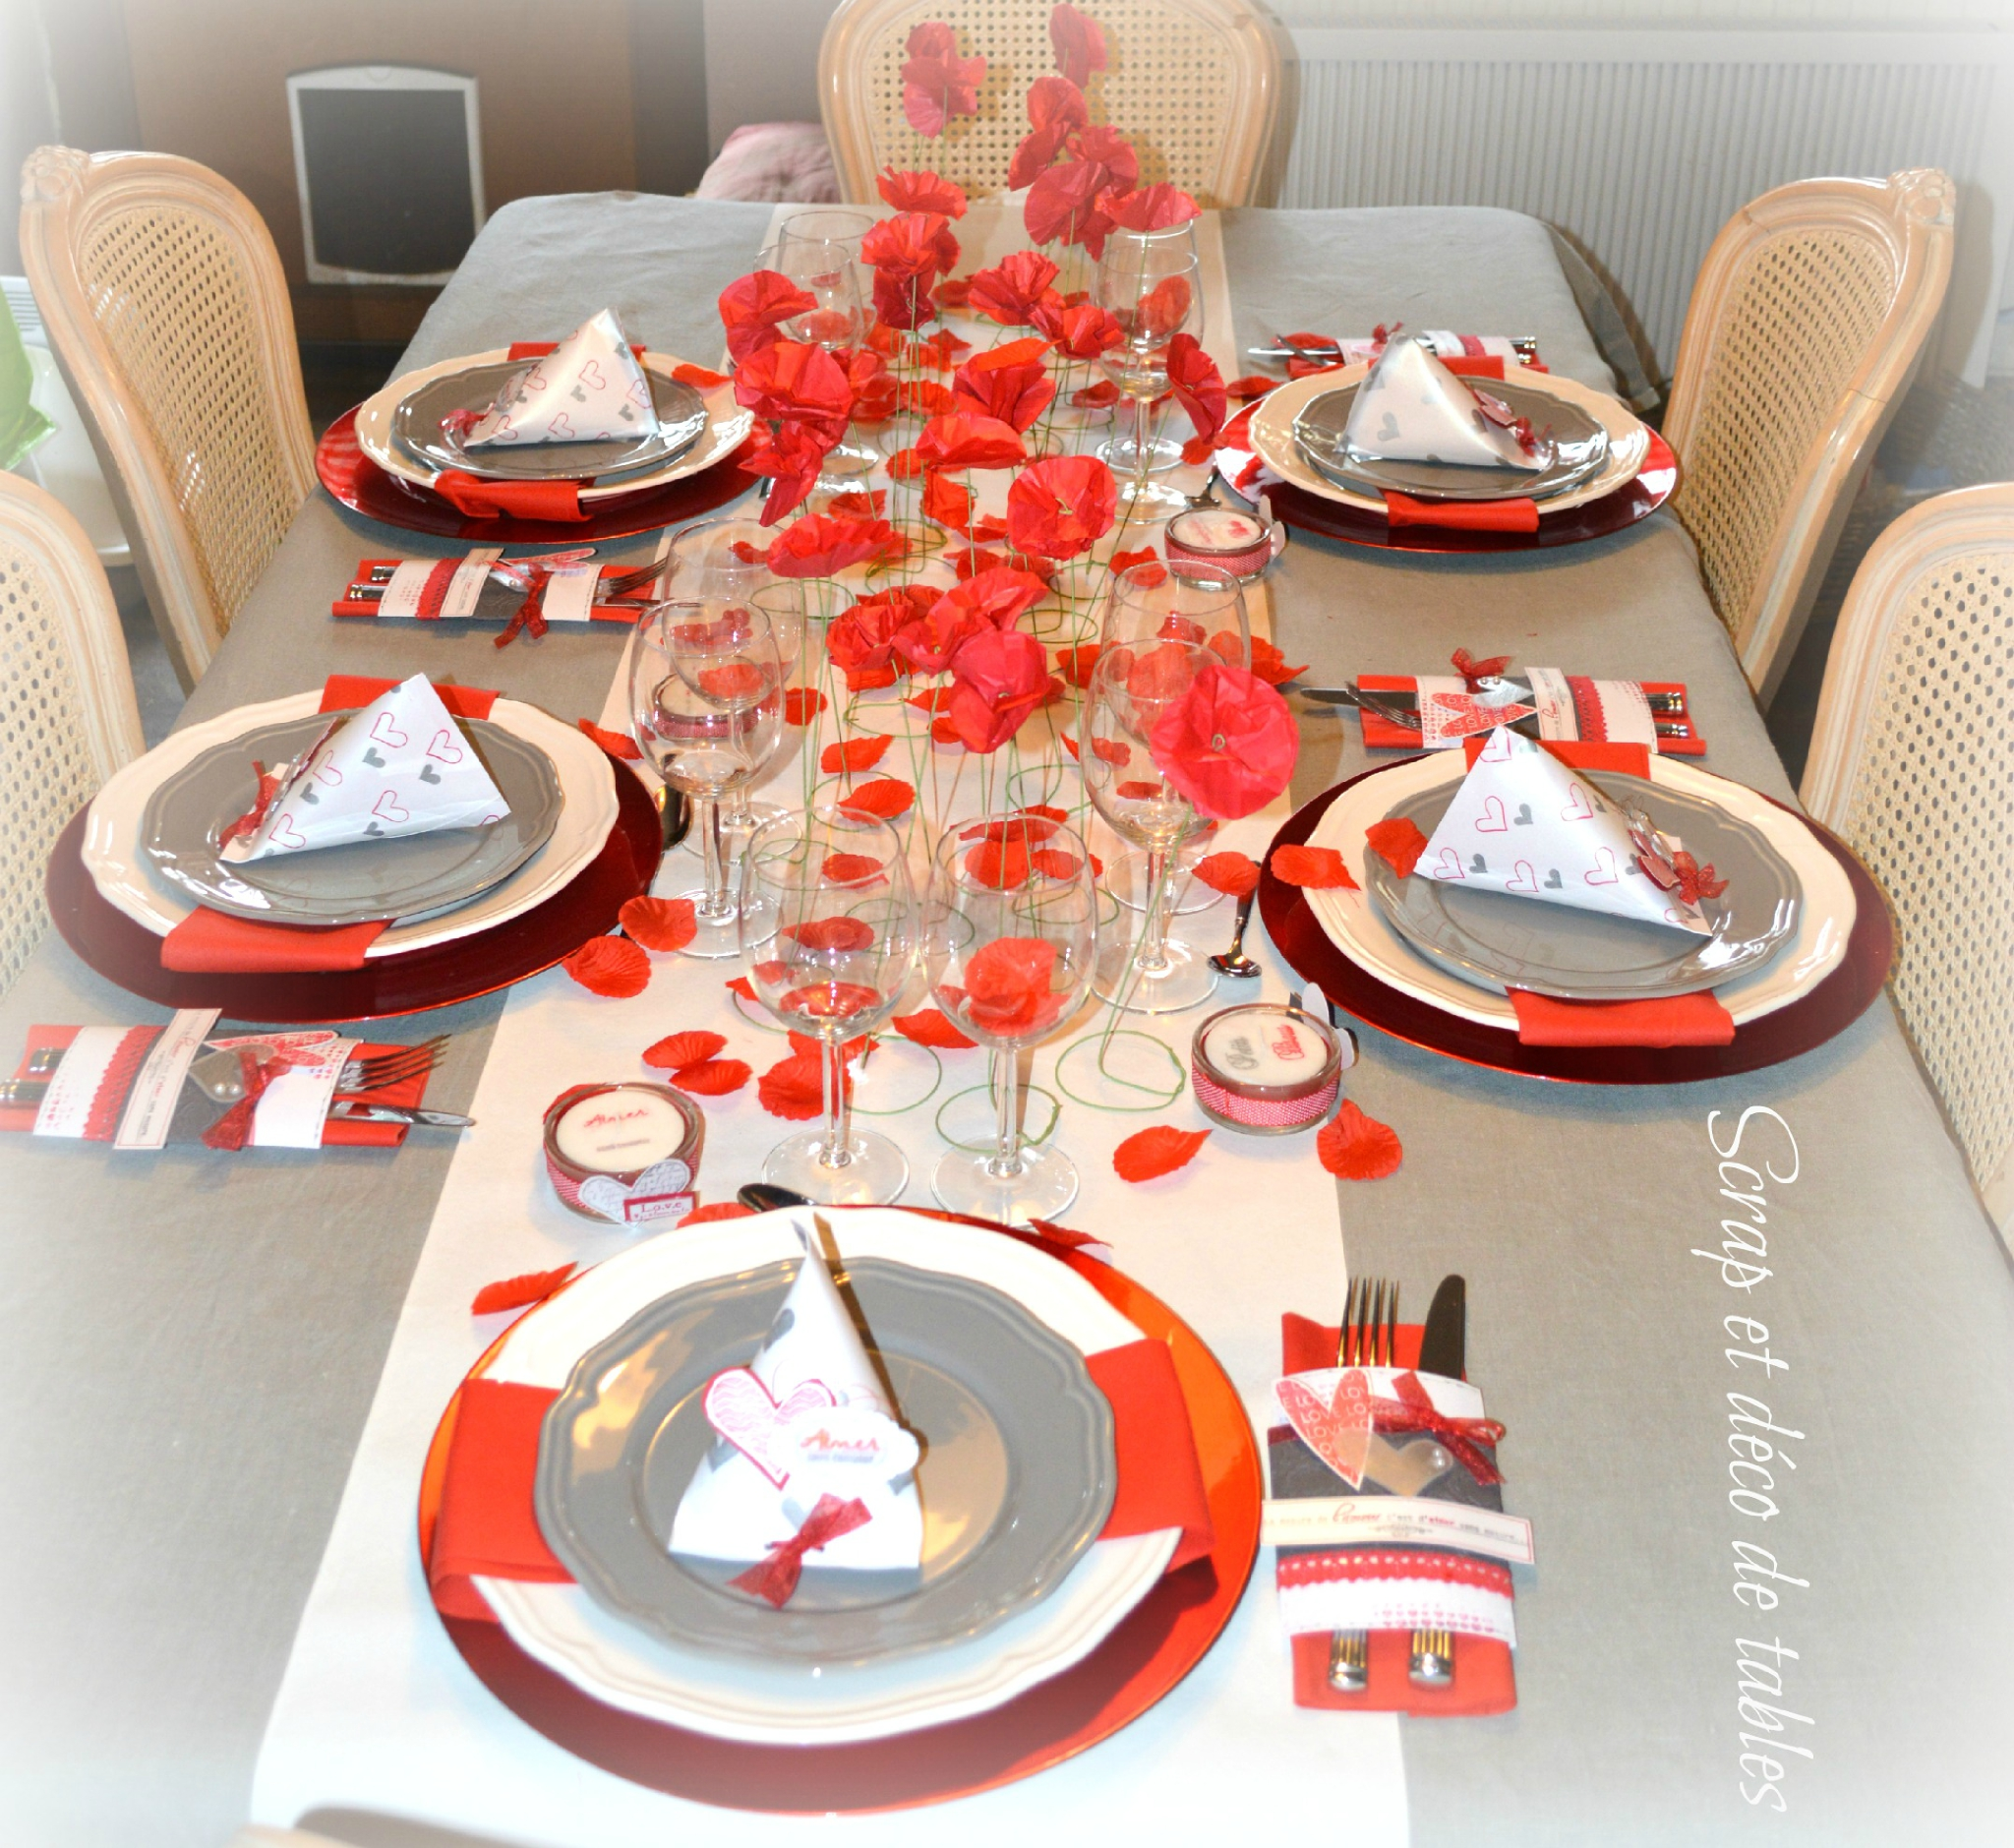 deco de table saint valentin 2015 scrap et d co de tables. Black Bedroom Furniture Sets. Home Design Ideas